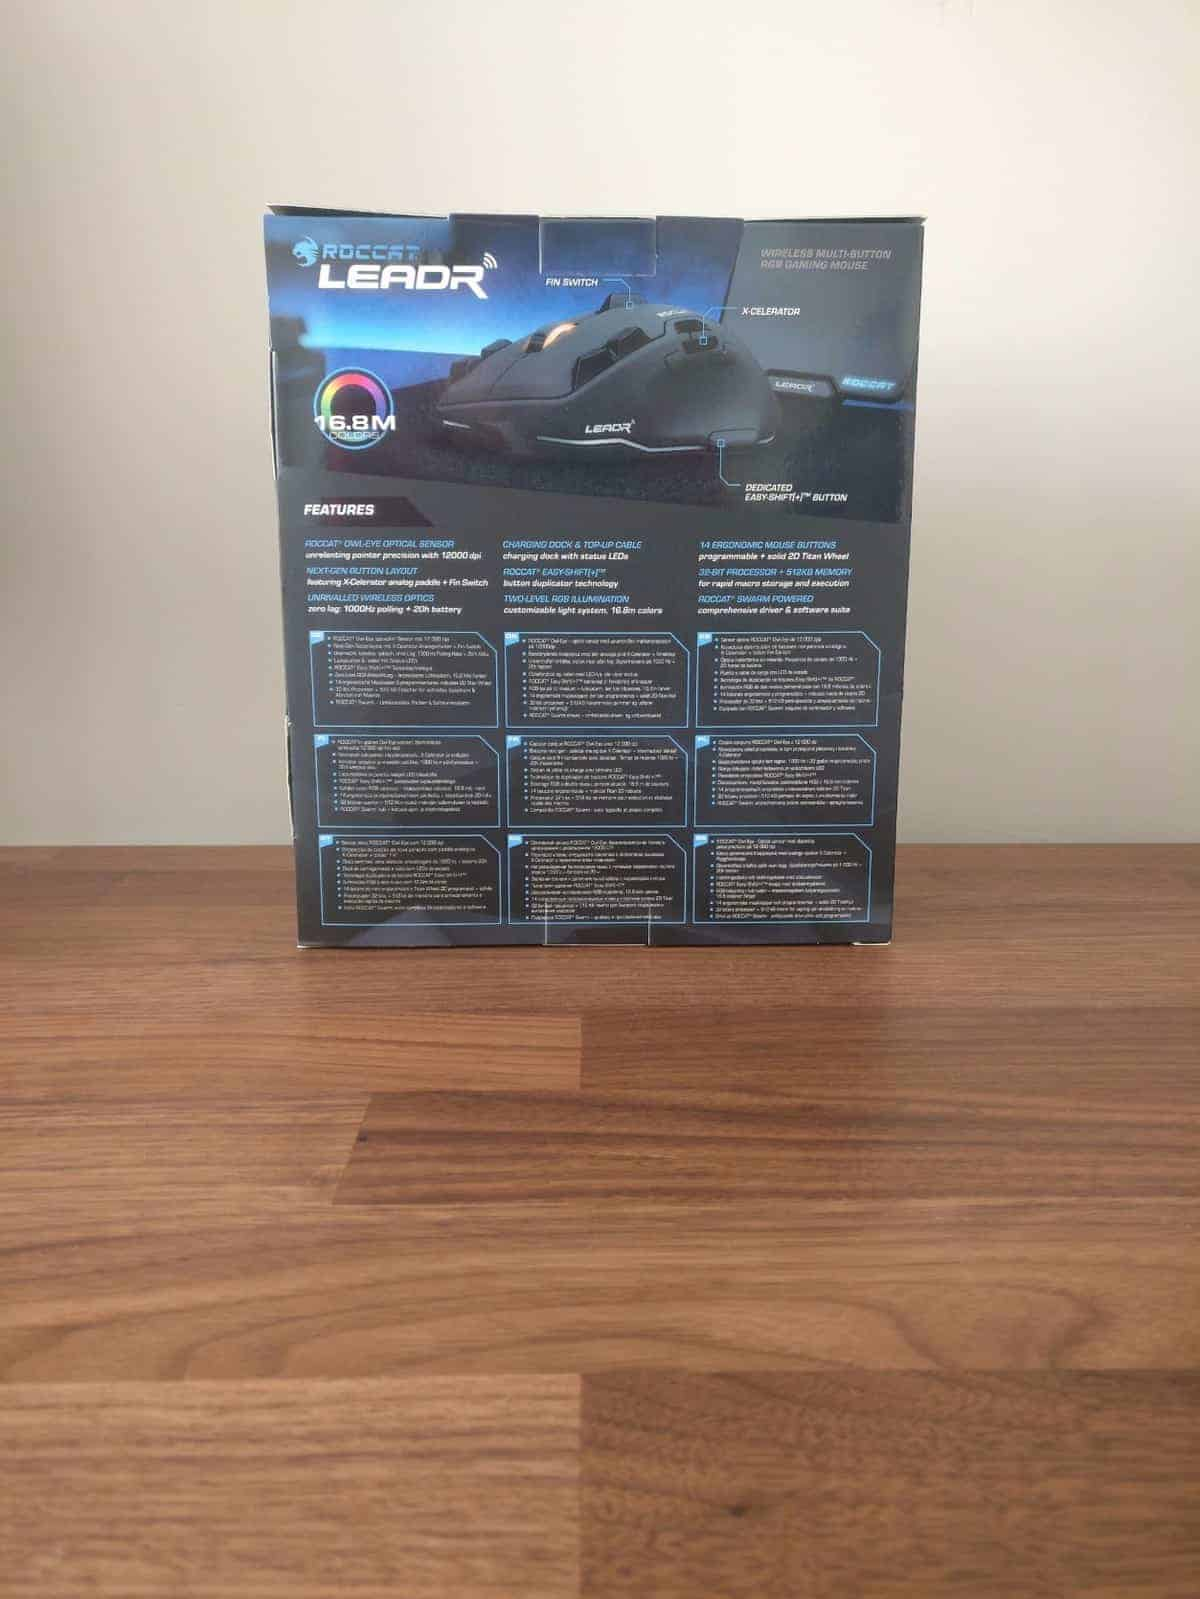 Roccat-Leadr-Photos10 Roccat Leadr Wireless Gaming Mouse Review